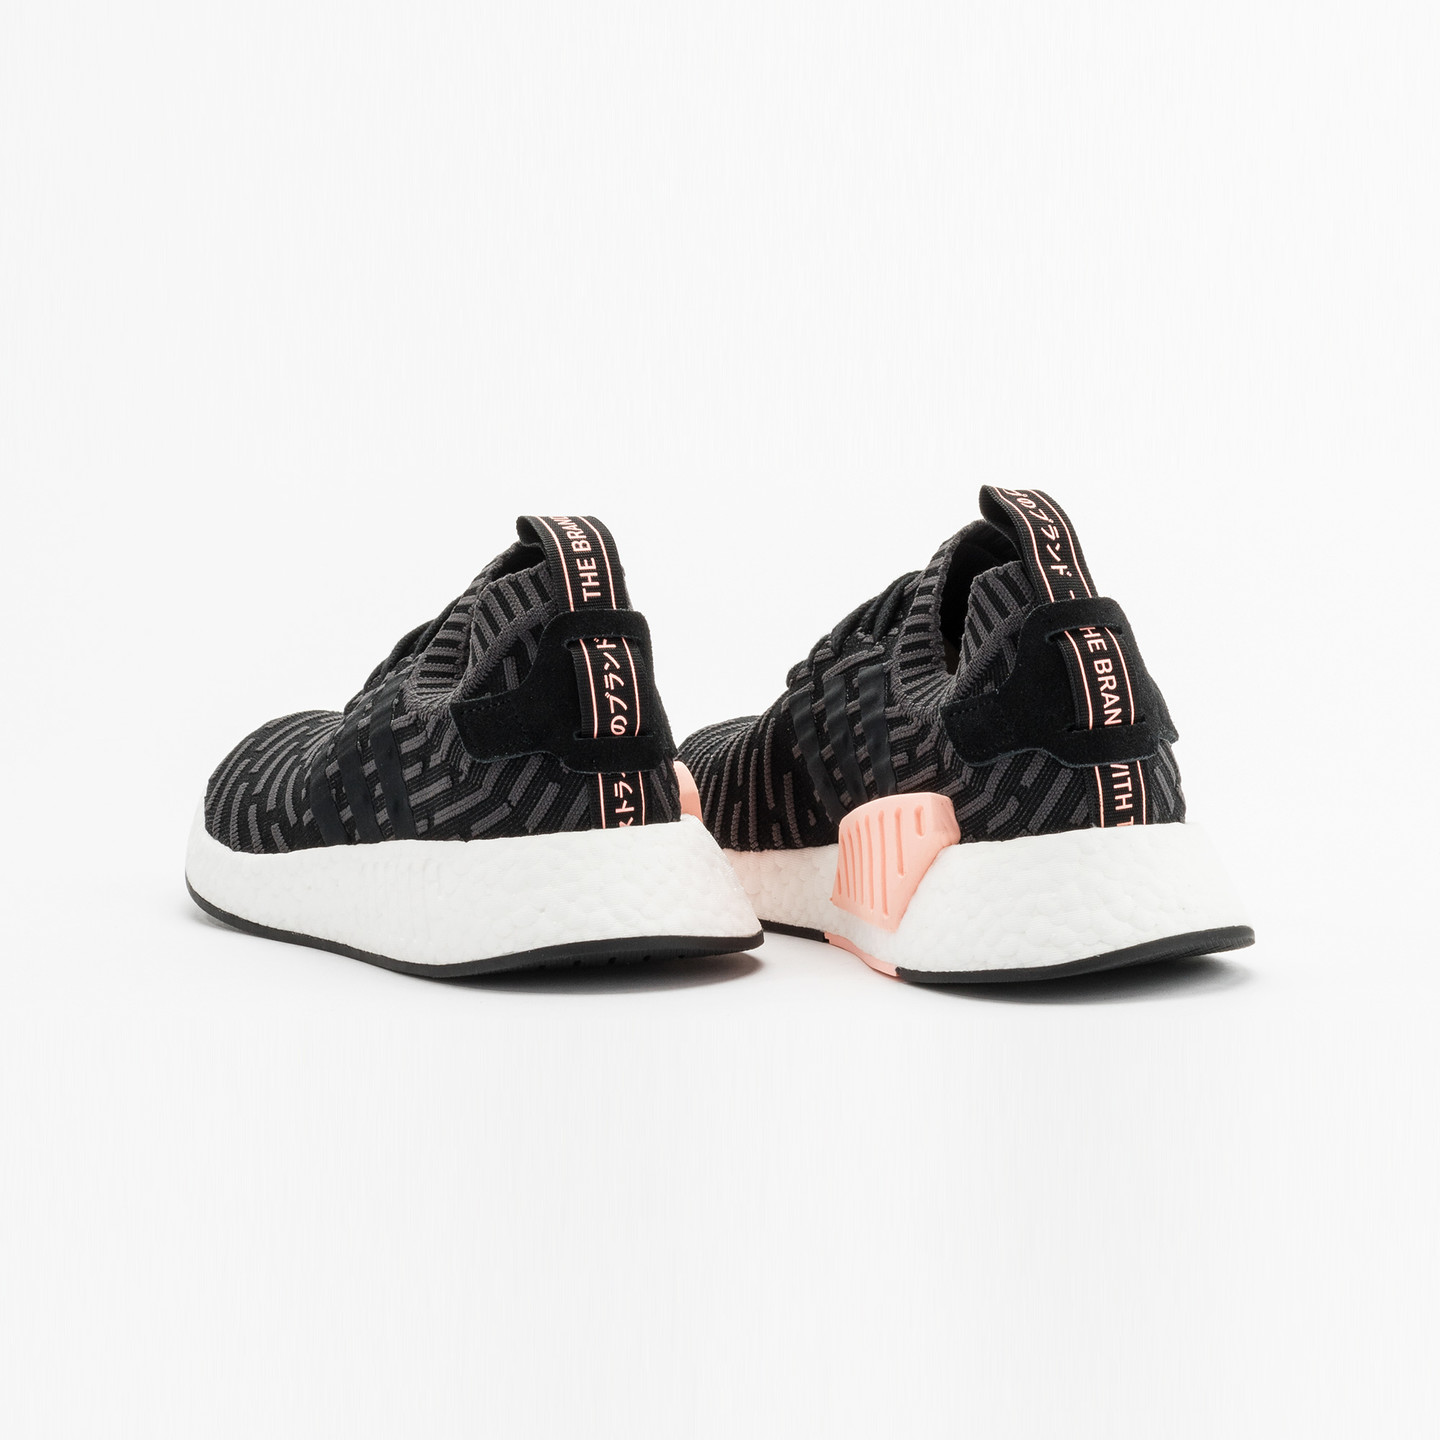 Adidas NMD R2 PK W Utility Black / Core Black / Light Peach BA7239-39.33